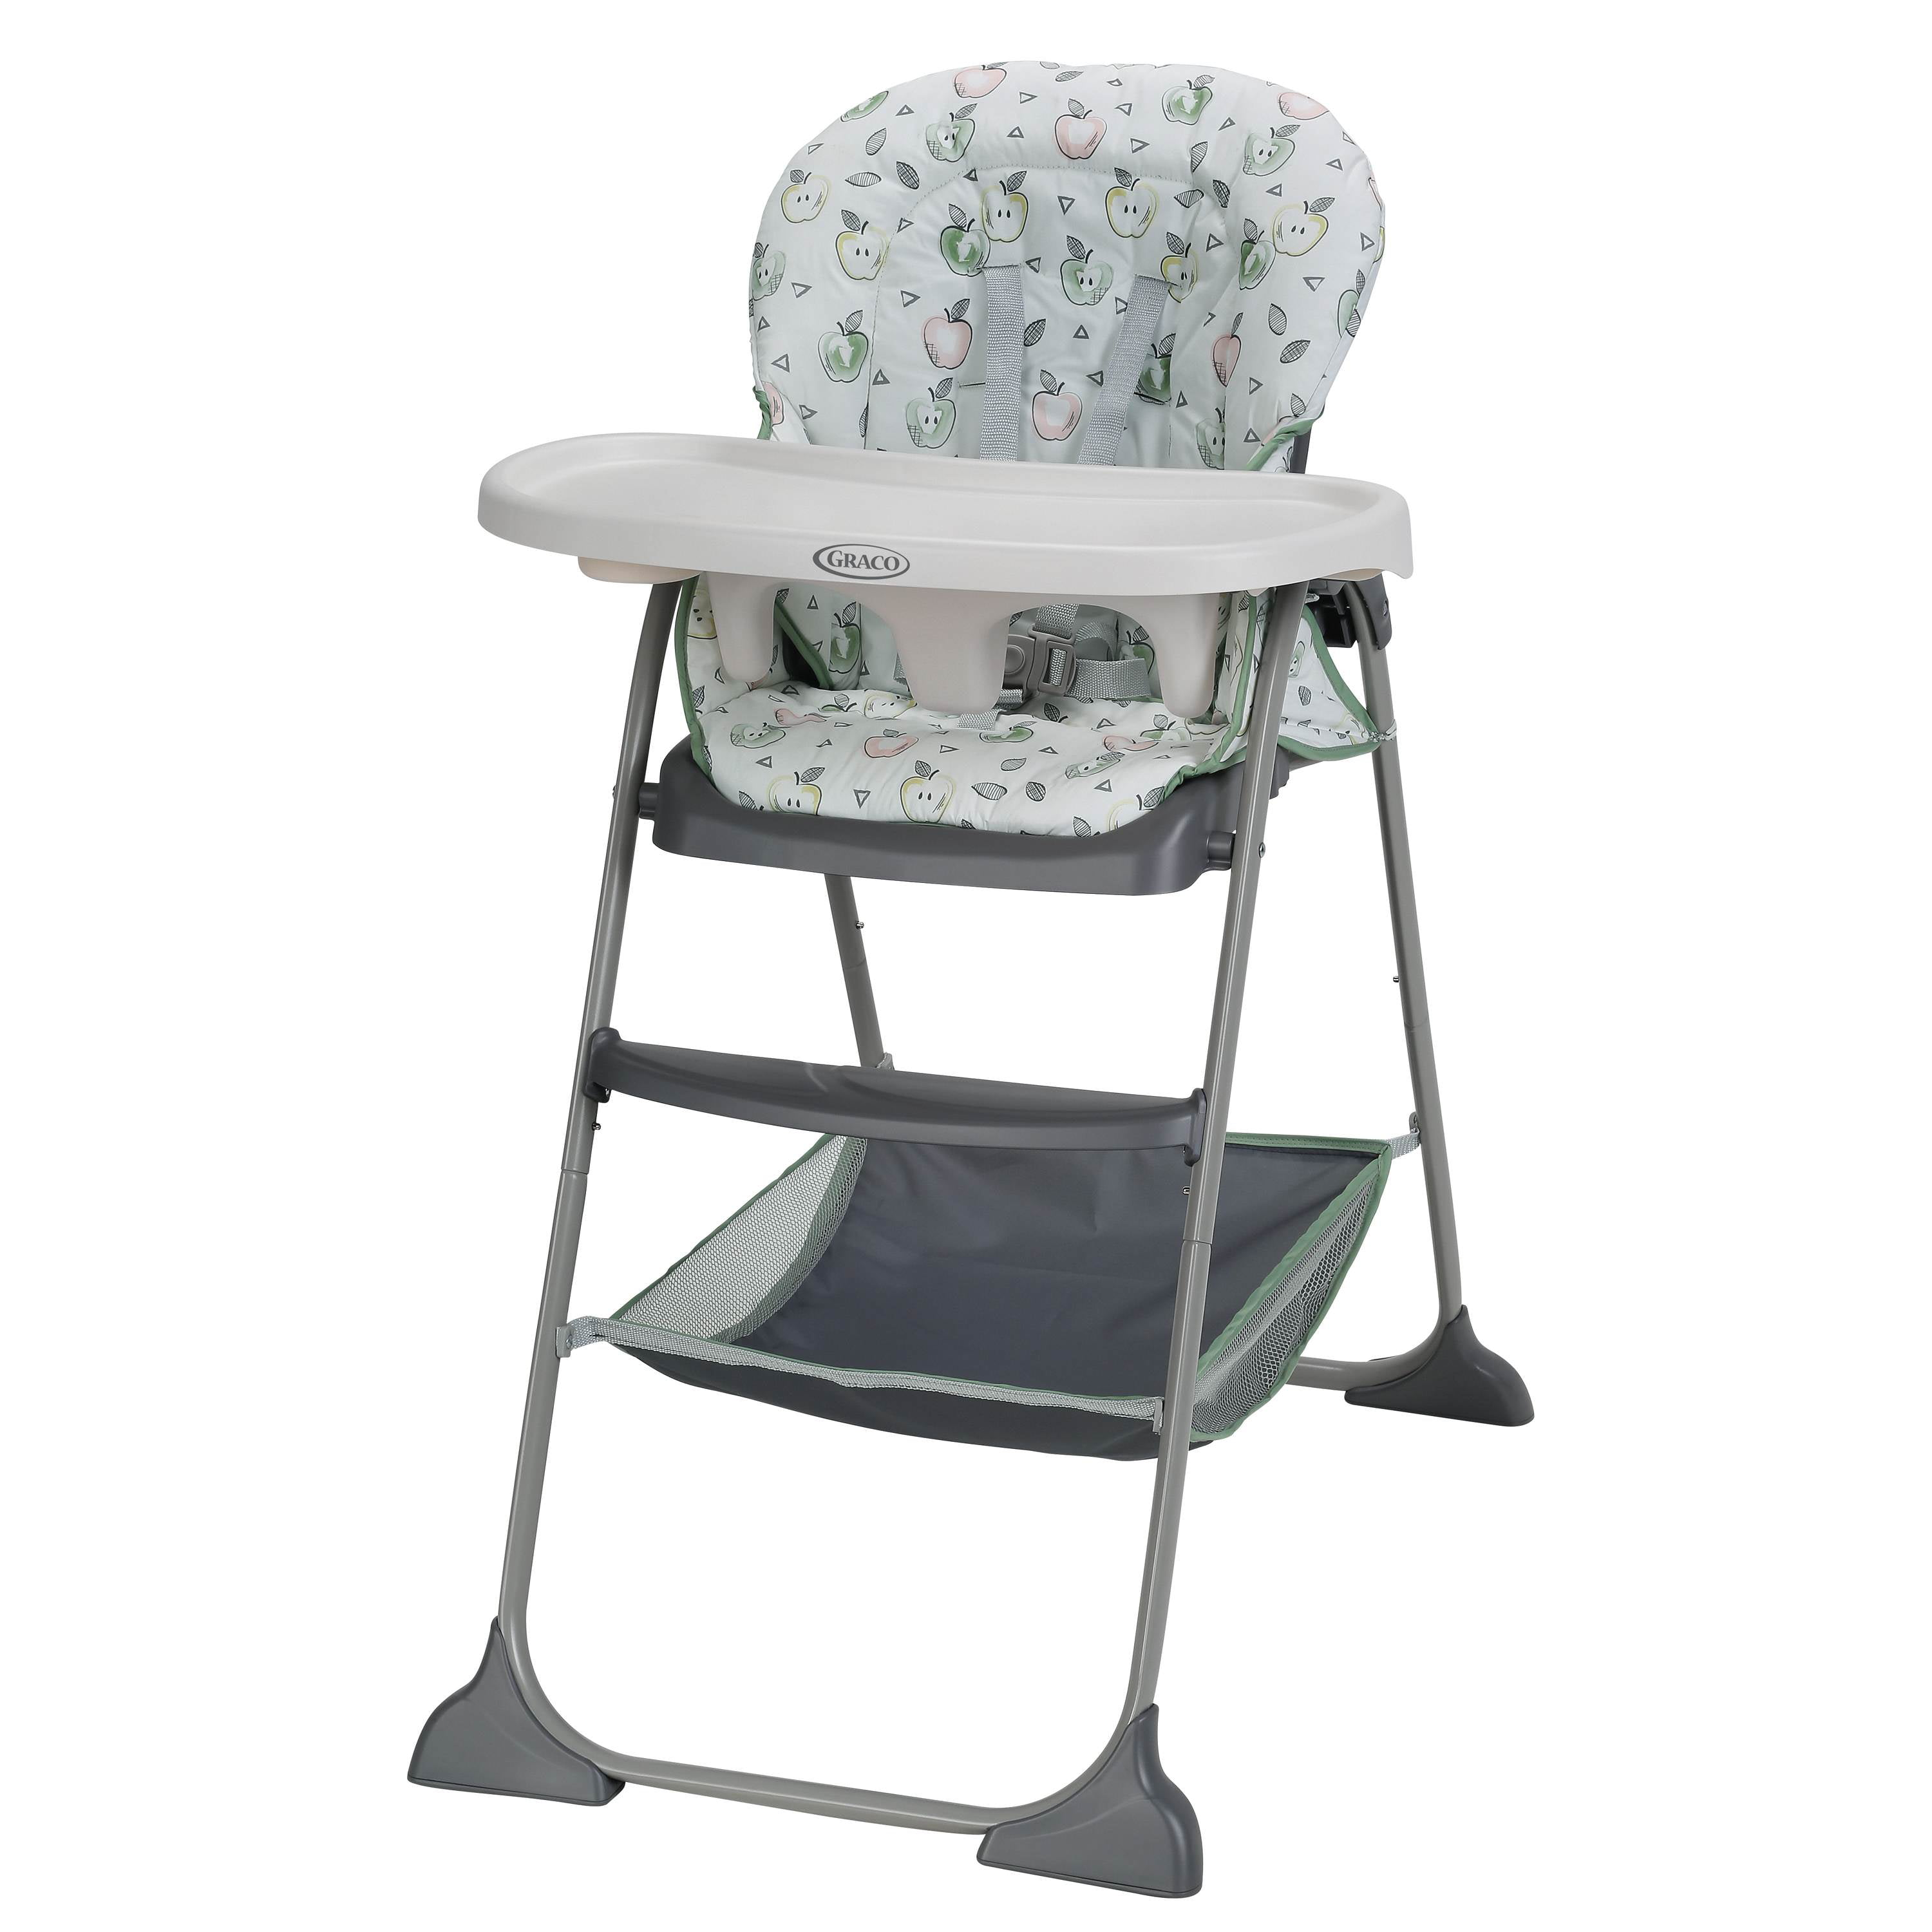 Adjustable Unisex High Chair Animal Print Easy to Use//Clean Super Fast Shipping